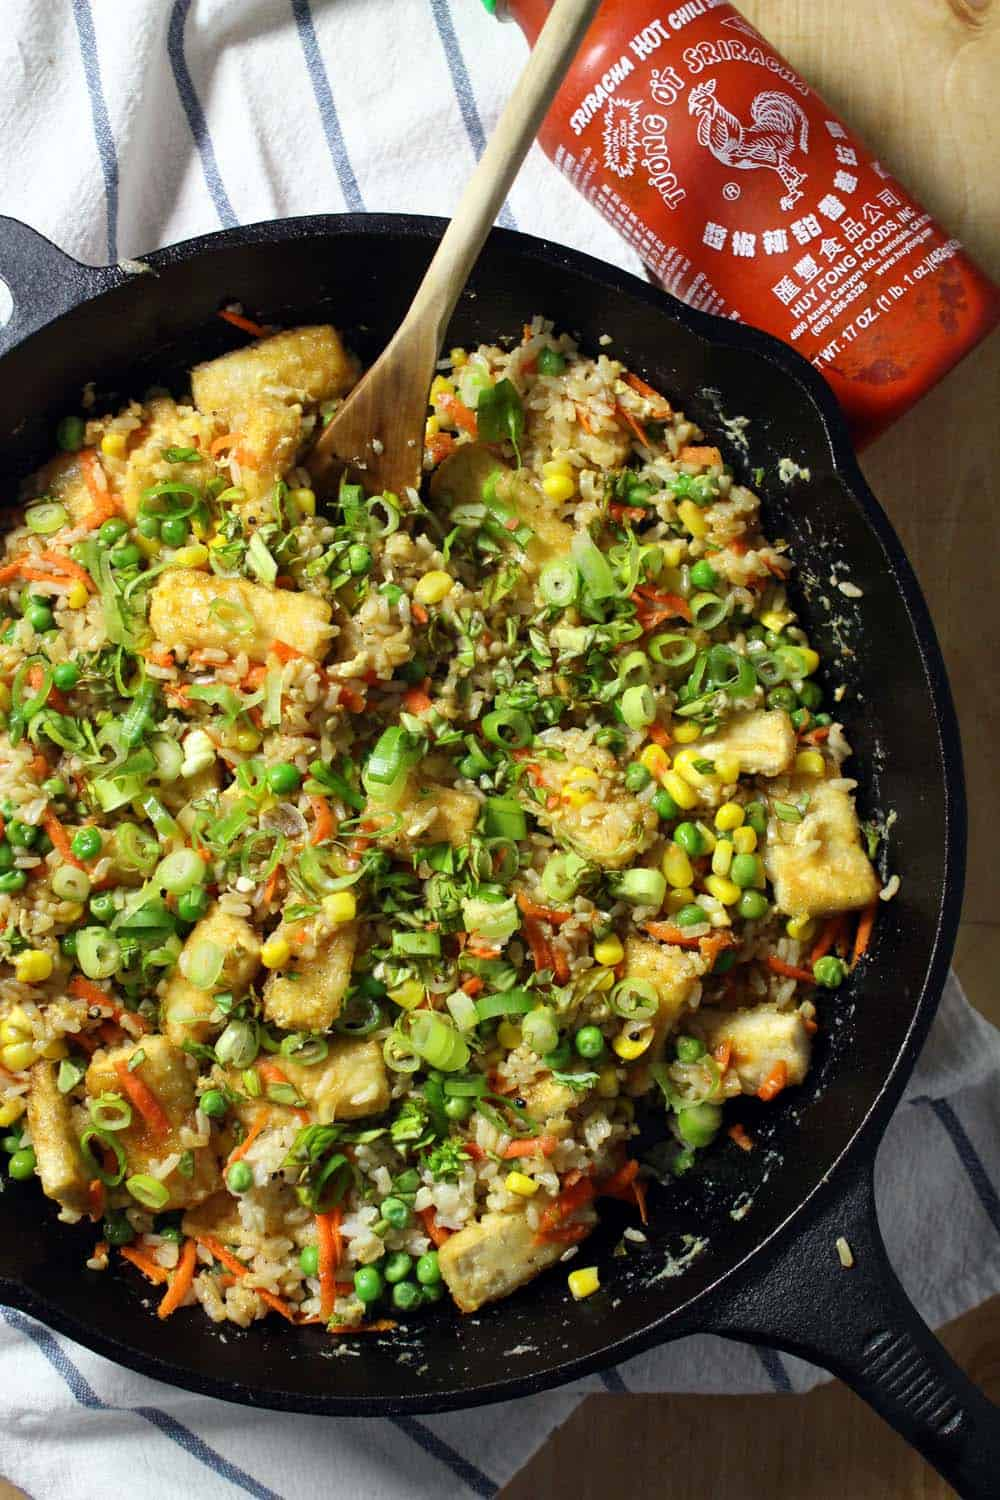 Bird's eye view of fried rice with crispy tofu in a cast iron skillet, with a wooden spoon sticking out.